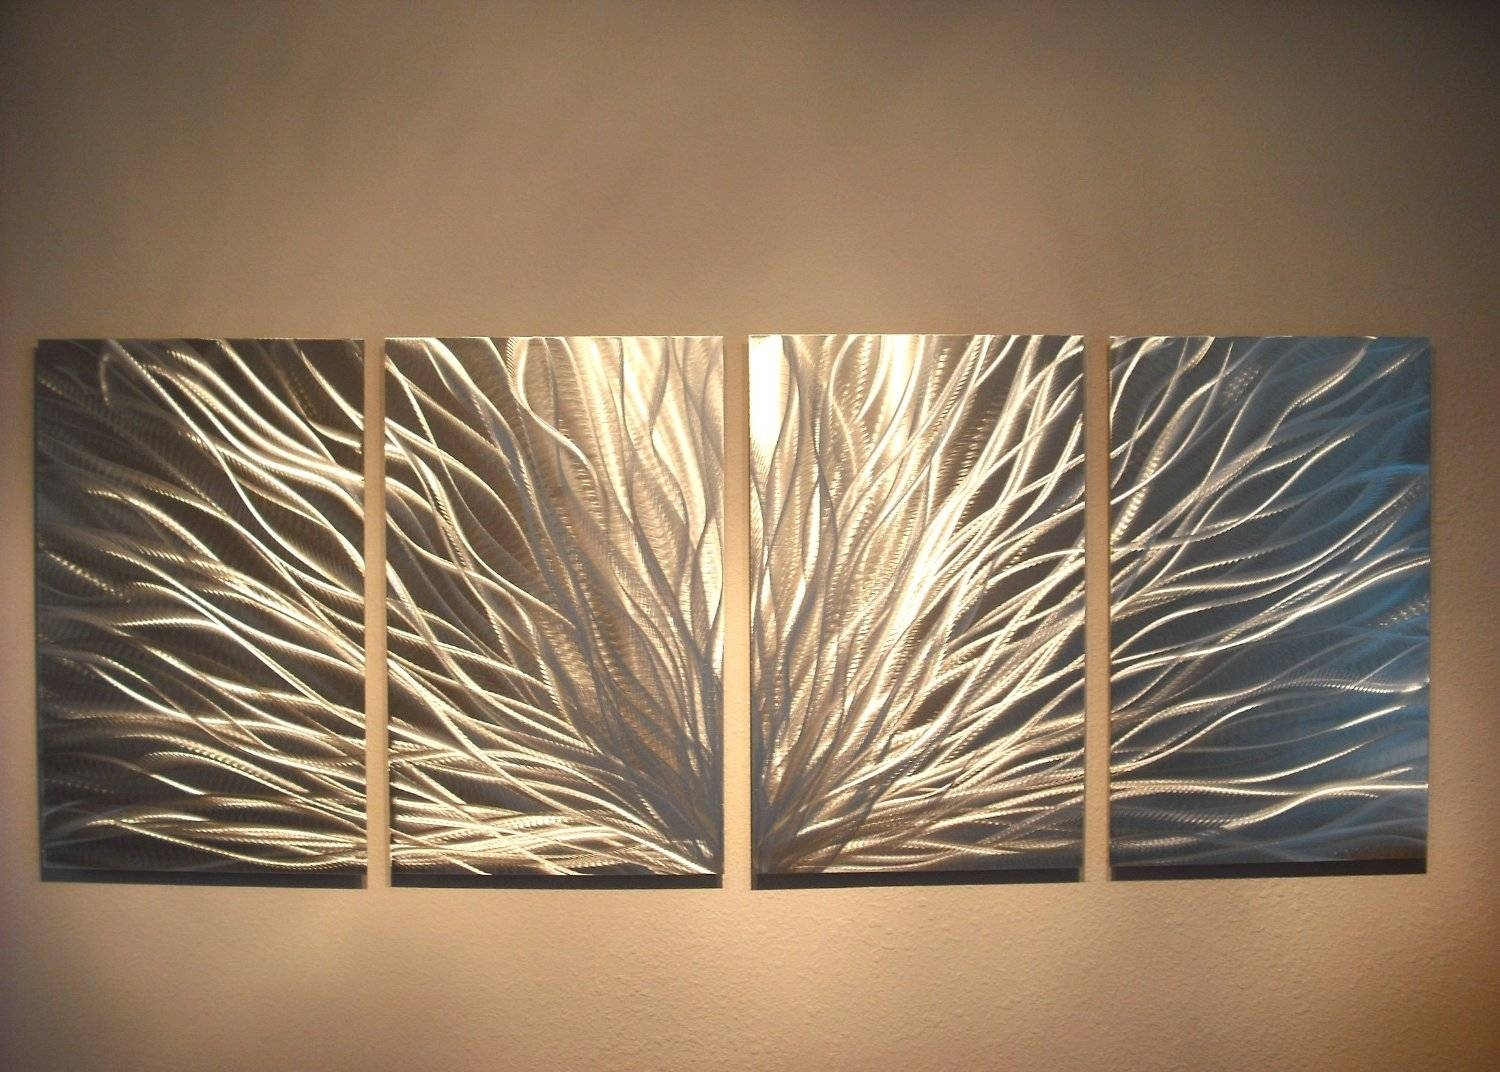 Wall Art Designs: Modern Abstract Wall Art Brown Cheap Pertaining To Newest Cheap Abstract Metal Wall Art (View 14 of 20)